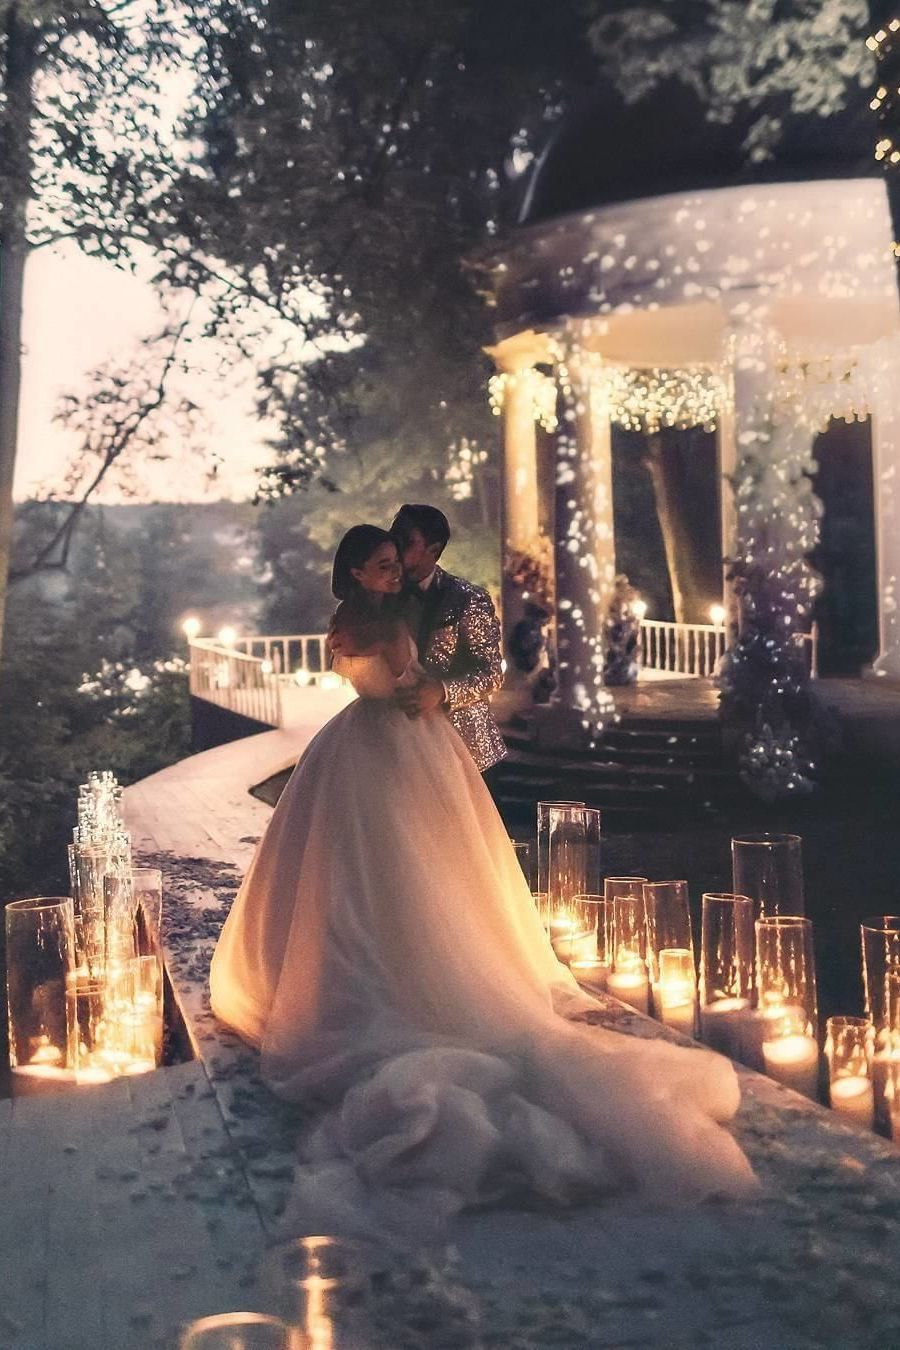 magical wedding photo ideas with lights in night